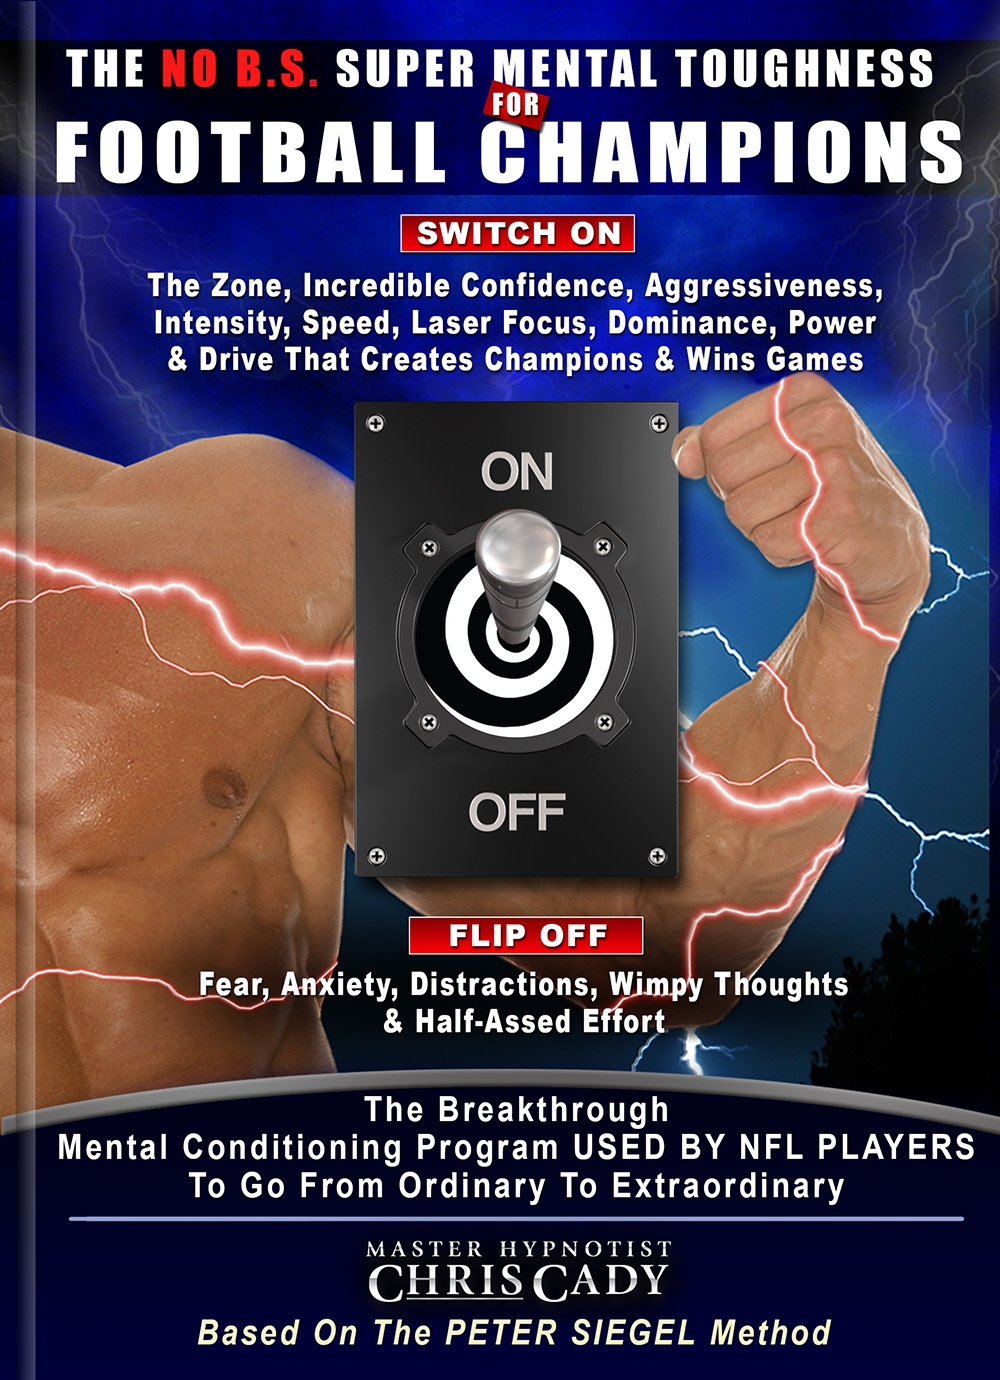 no bs mental toughness for football players with hypnosis cd mp3 program